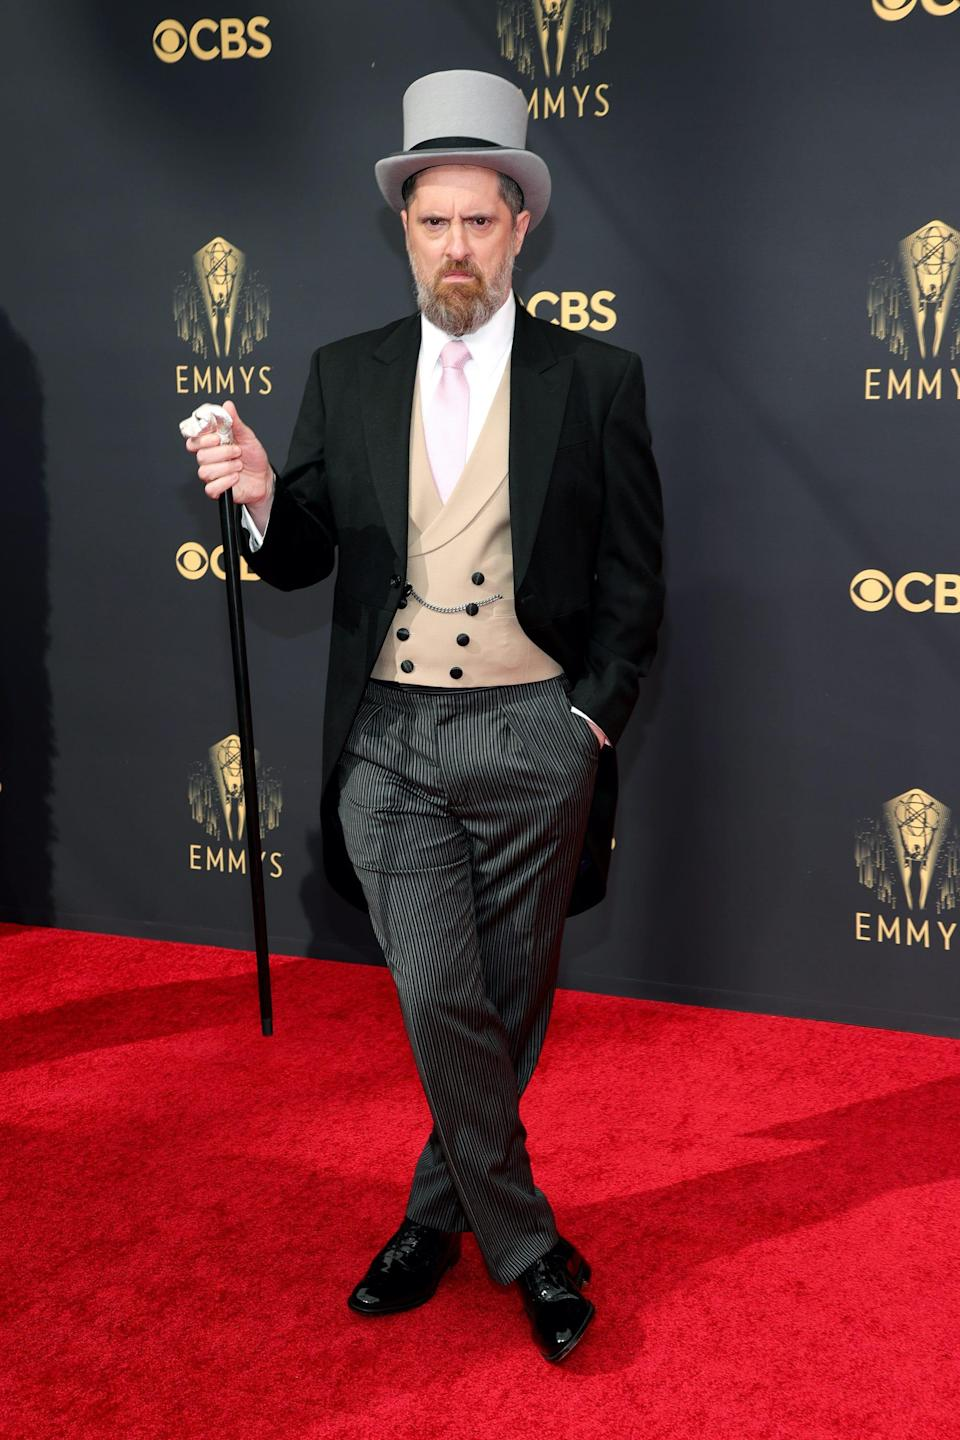 Brendan Hunt wears a morning suit to the Emmy Awards.